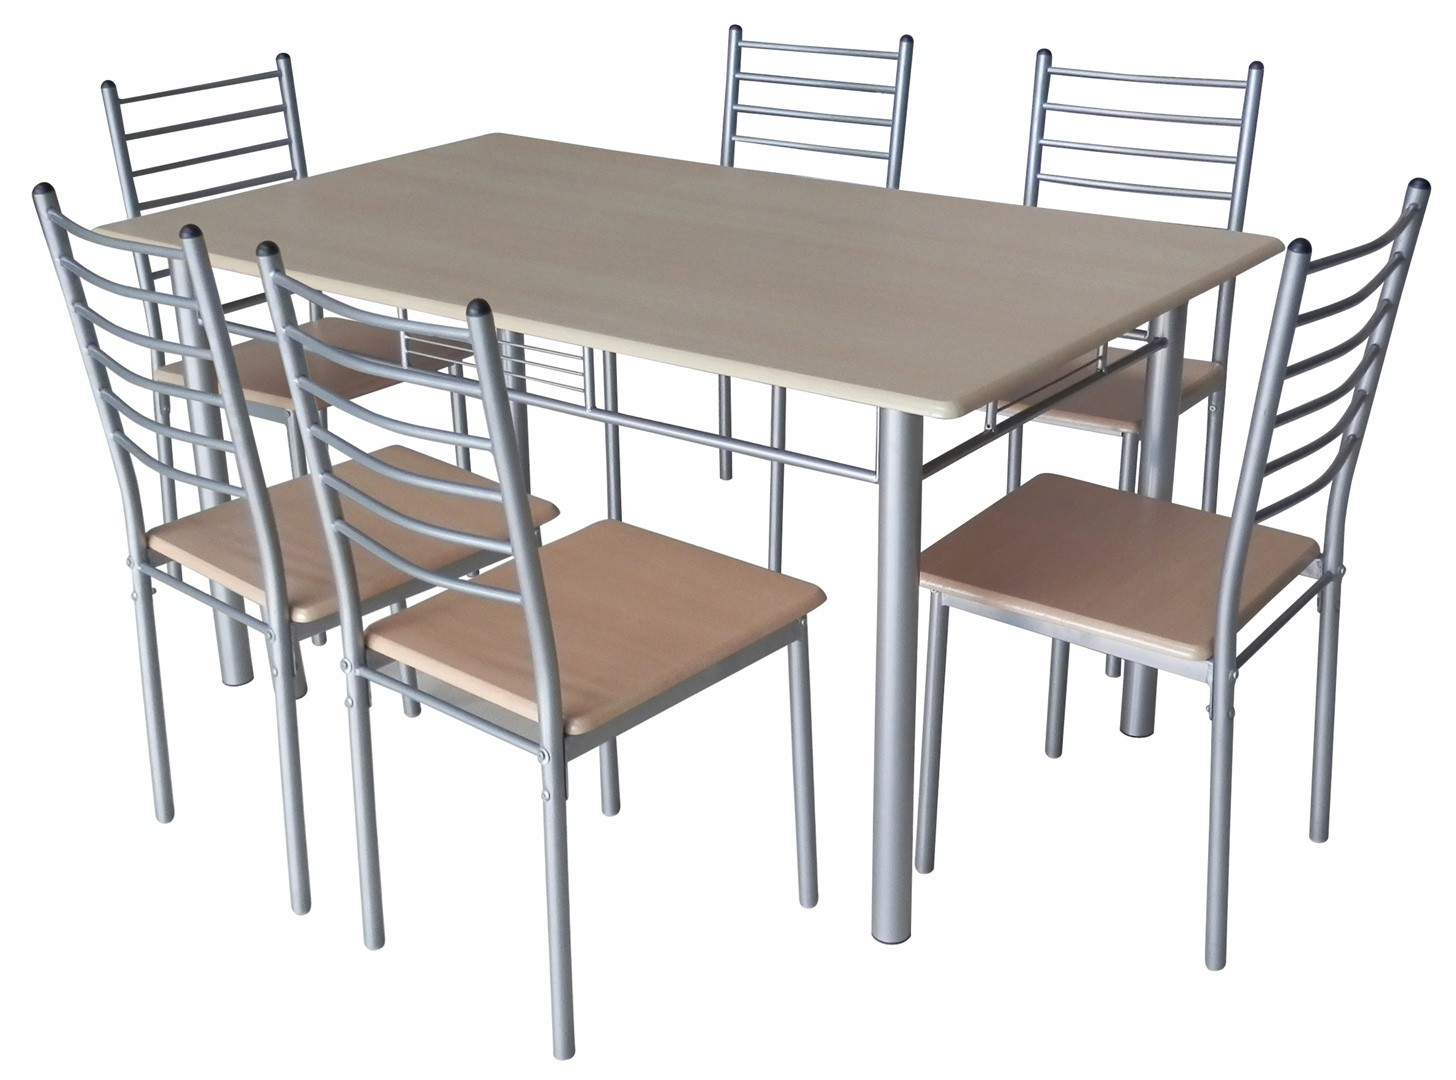 Ensemble table et chaises de cuisine but chaise id es de d coration de ma - Ensemble table chaise cuisine ...